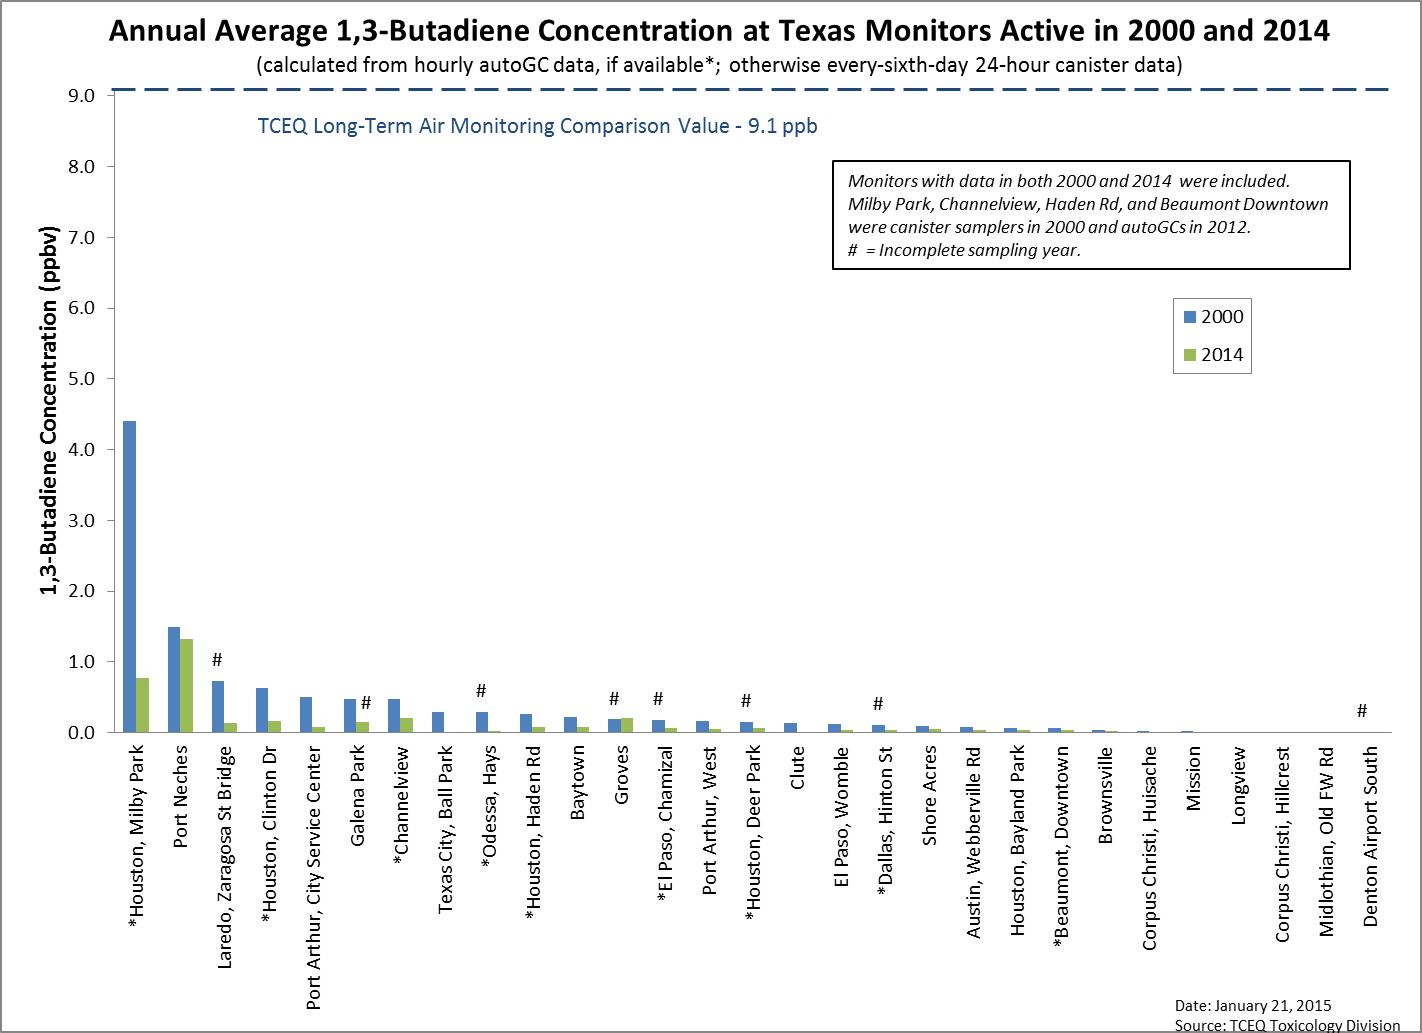 Figure 9. Annual average 1,3 butadiene concentration at Houston monitoring sites active in 2000 and 2014